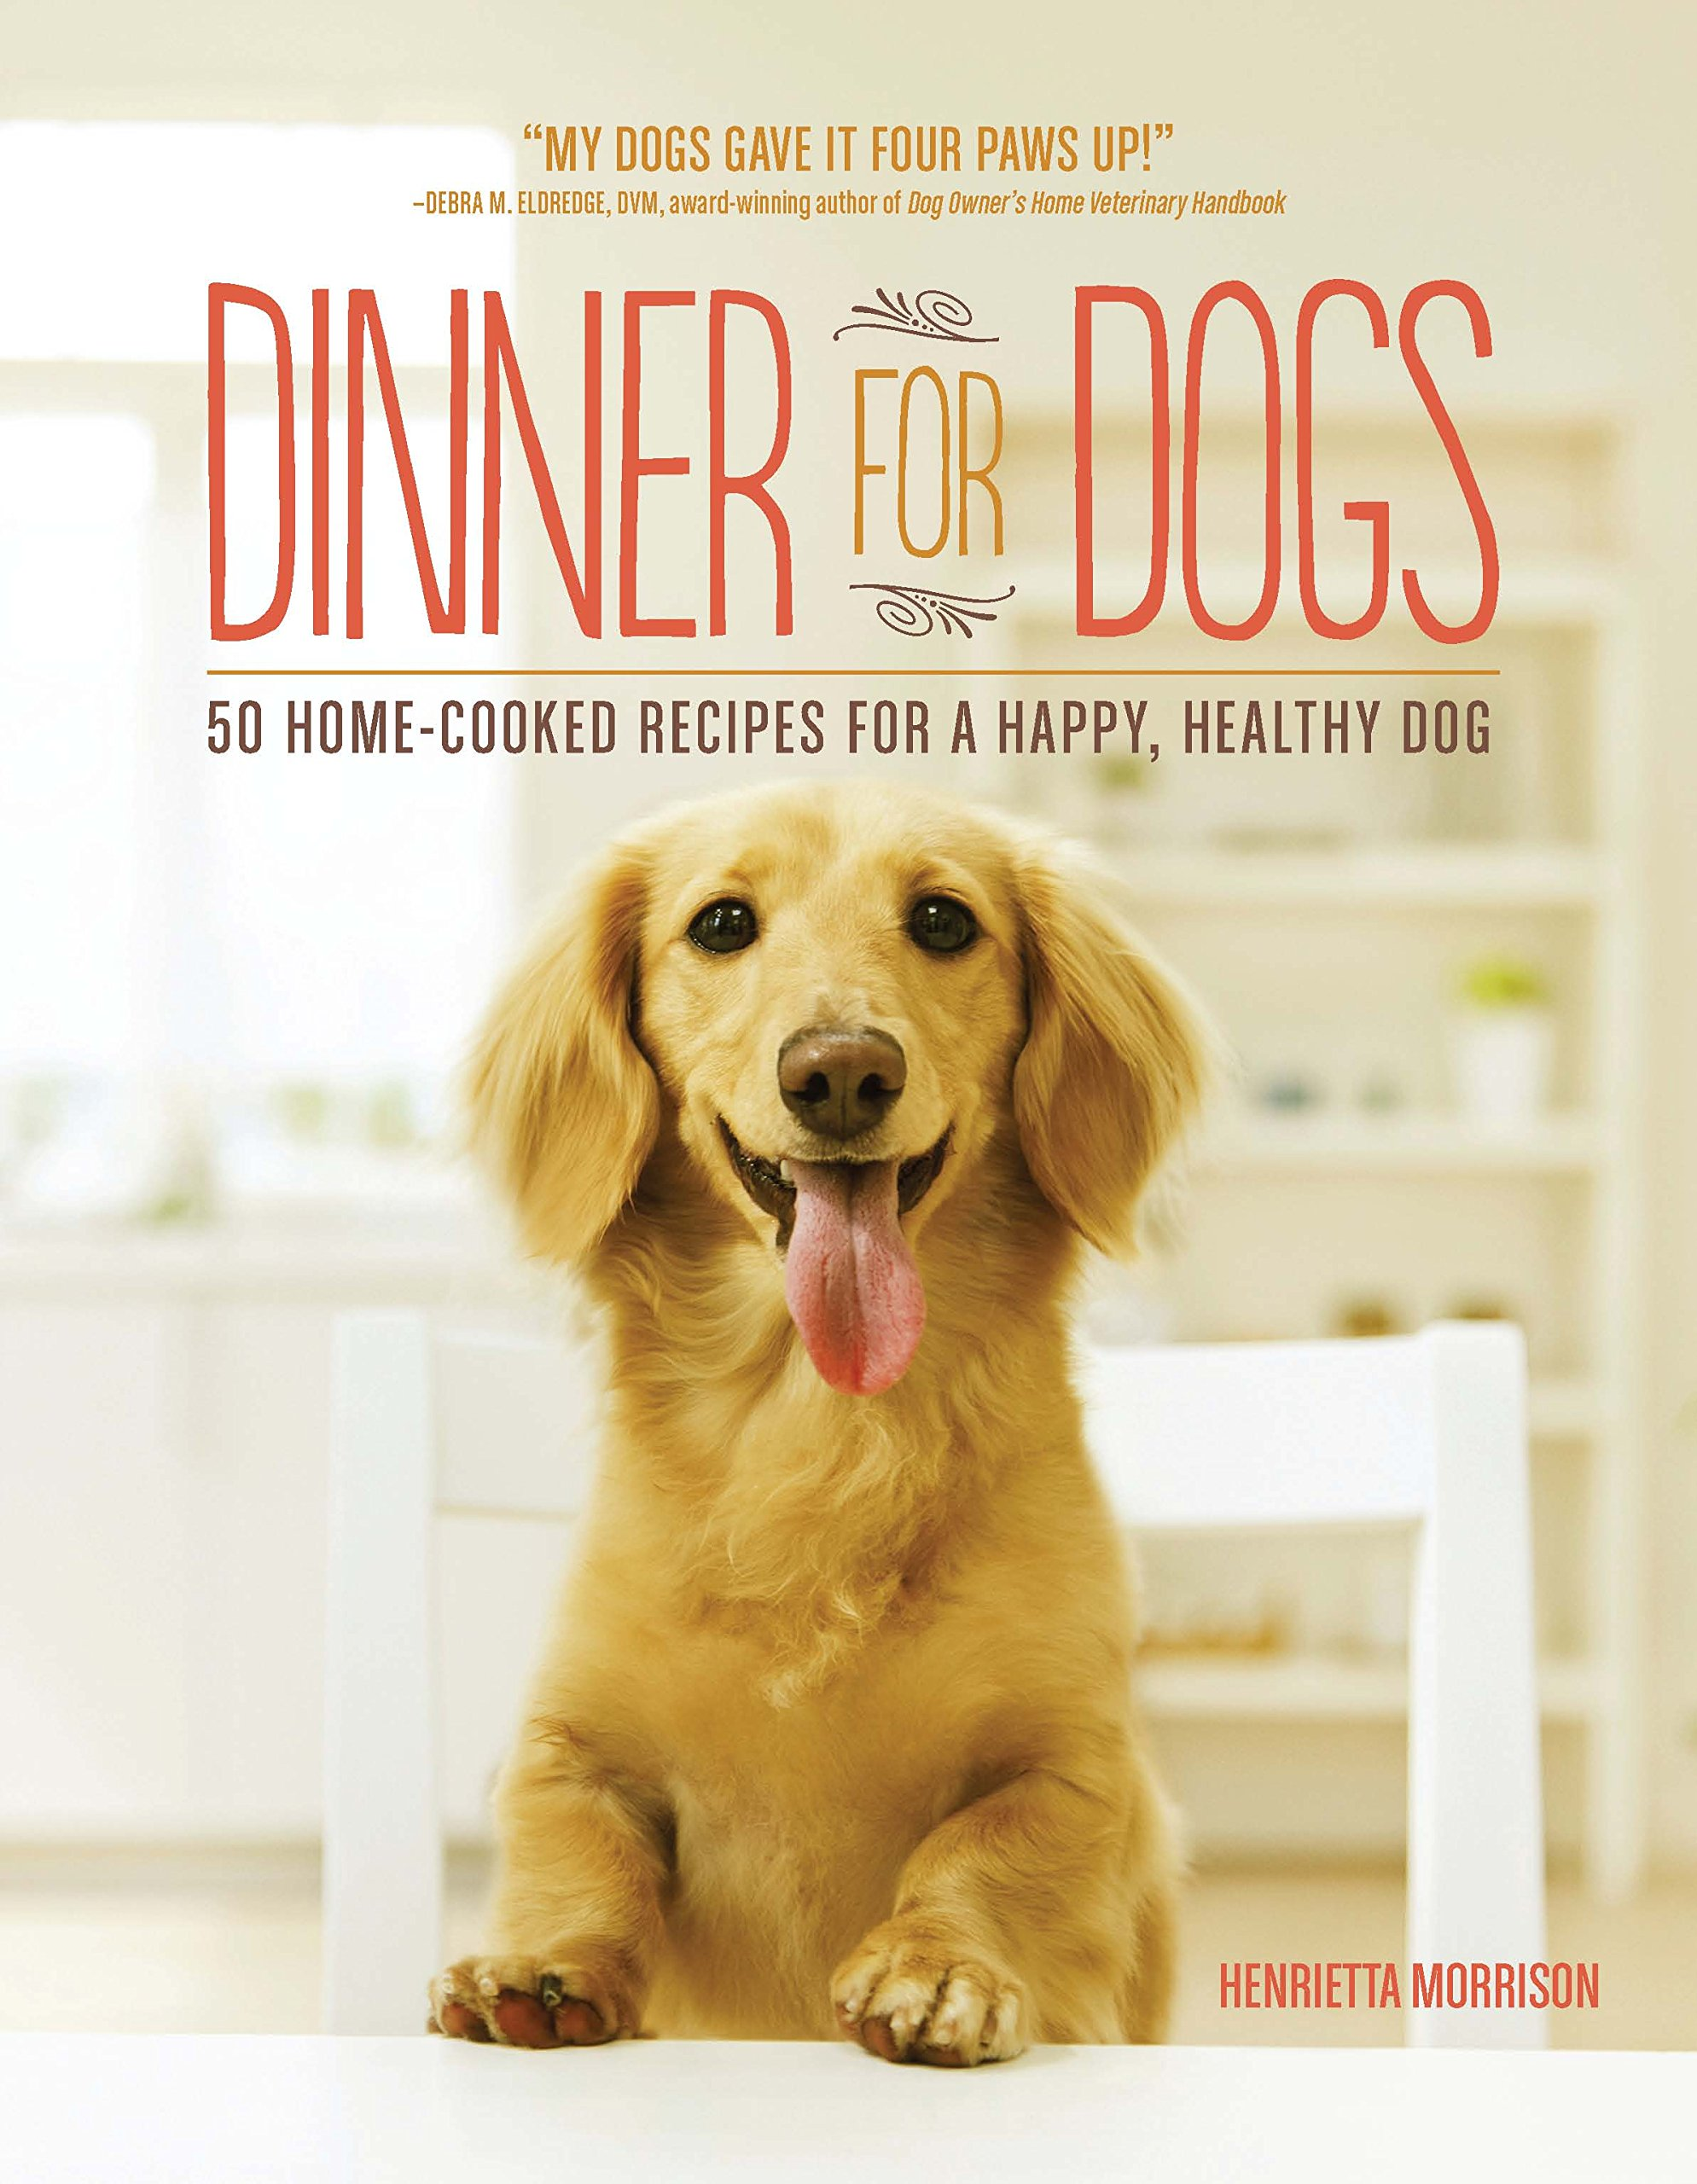 Dinner for dogs 50 home cooked recipes for a happy healthy dog dinner for dogs 50 home cooked recipes for a happy healthy dog henrietta morrison 9781615192557 amazon books forumfinder Images